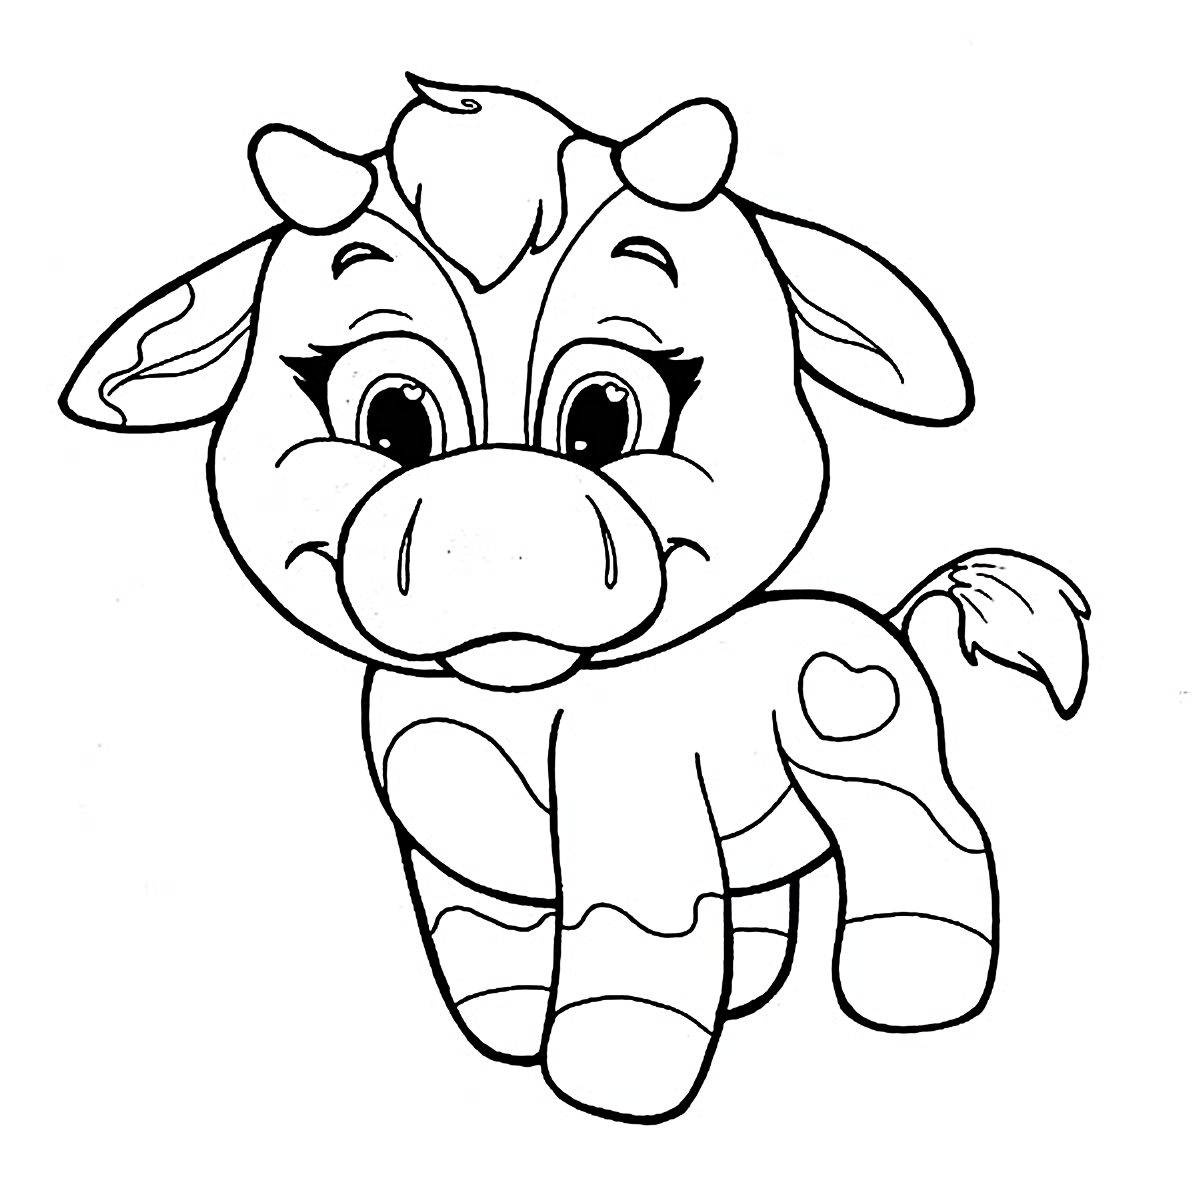 colouring pages of cow printable animals coloring pages sheets coloring pages colouring of cow pages